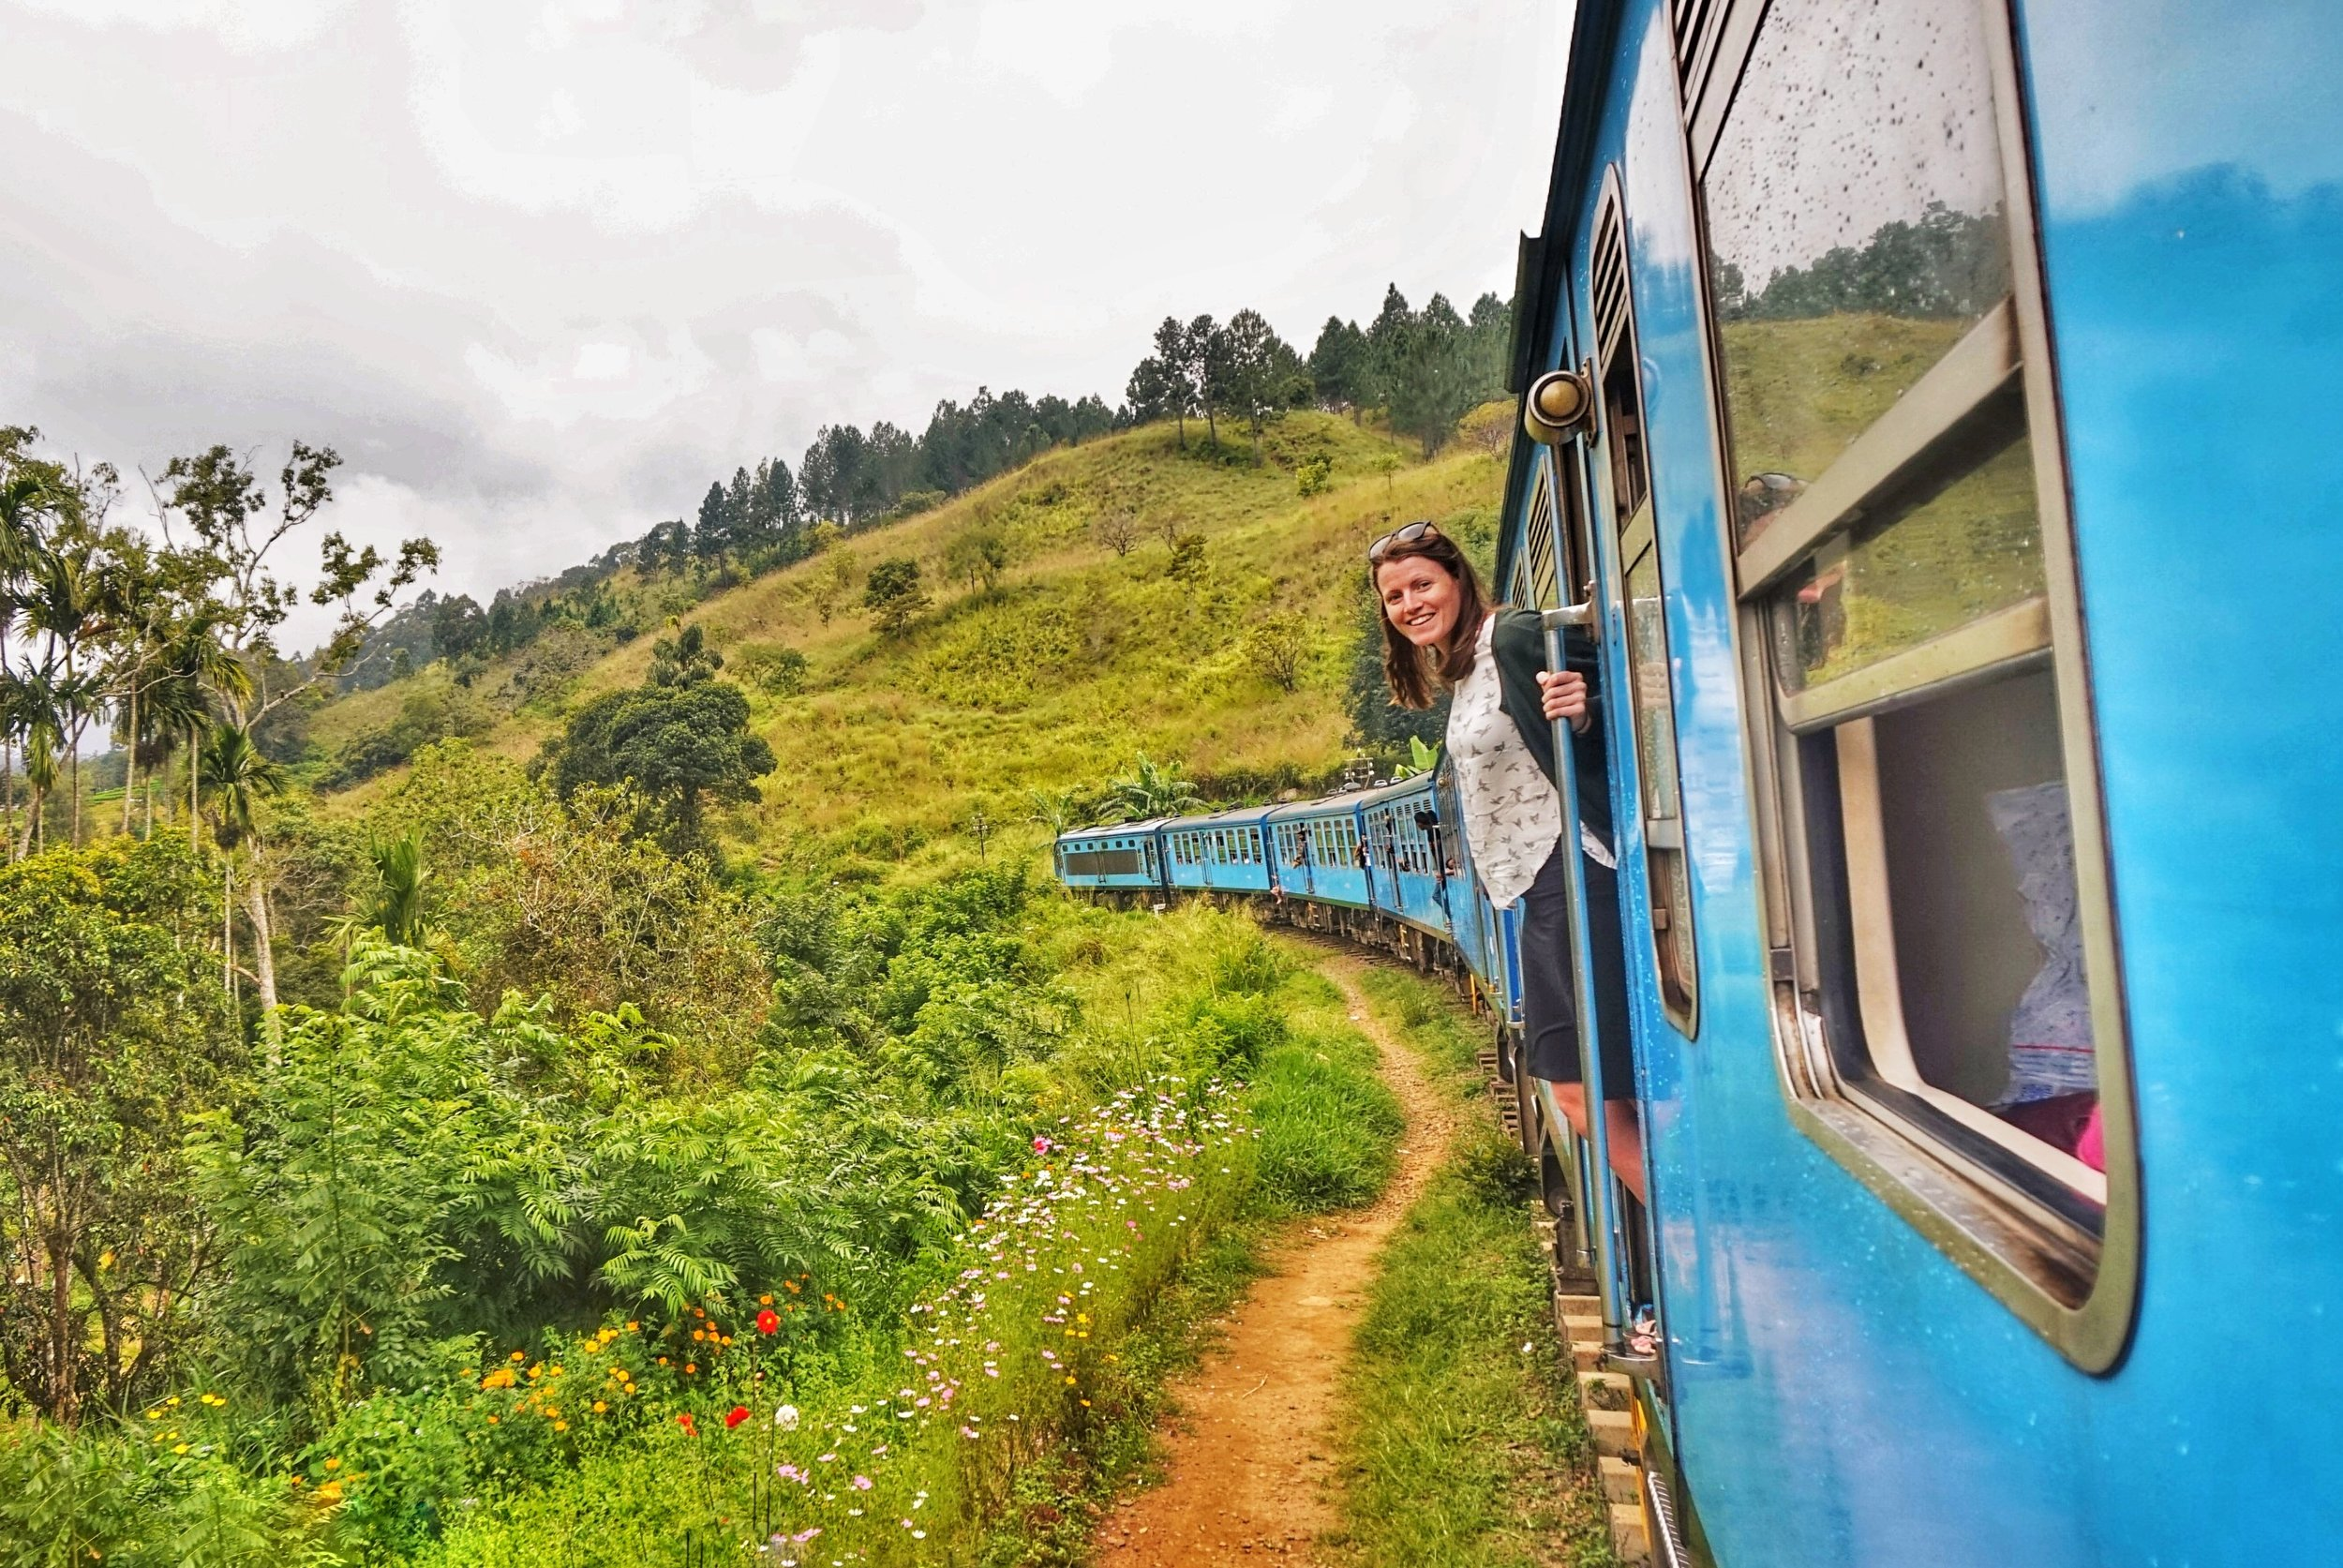 riding on the Kandy to Ella train, a must-do when in Sri Lanka